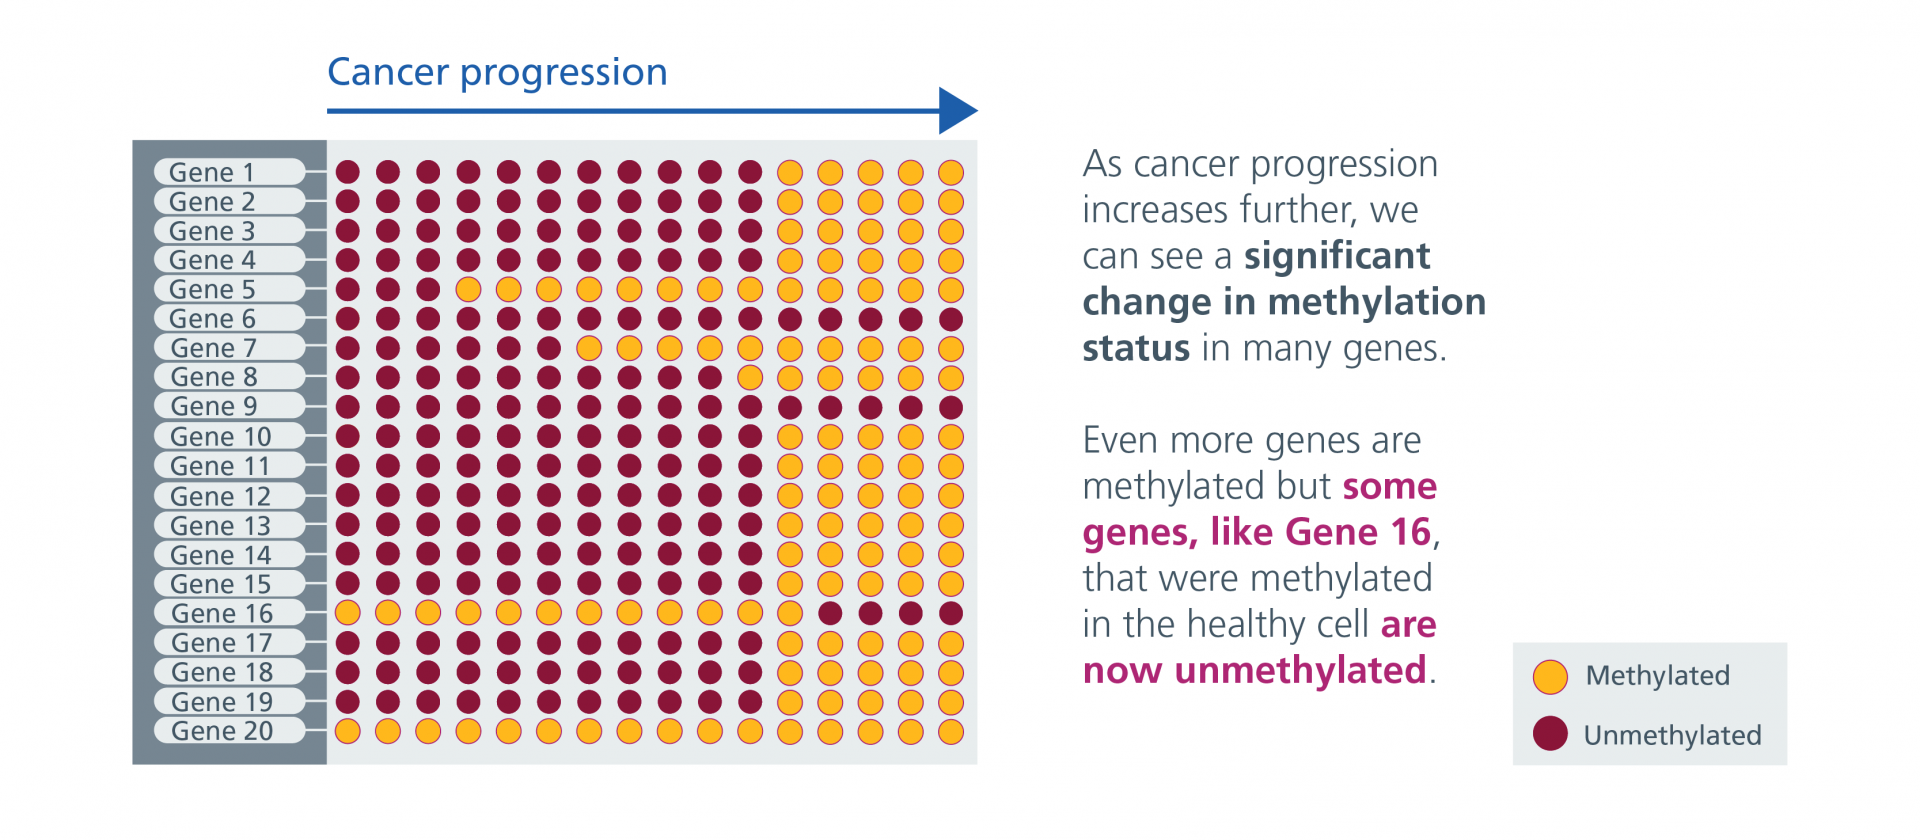 Cancer progresses further and methylation change continues. Even more genes are methylated but some genes that were methylated in the healthy cell are now unmethylated.